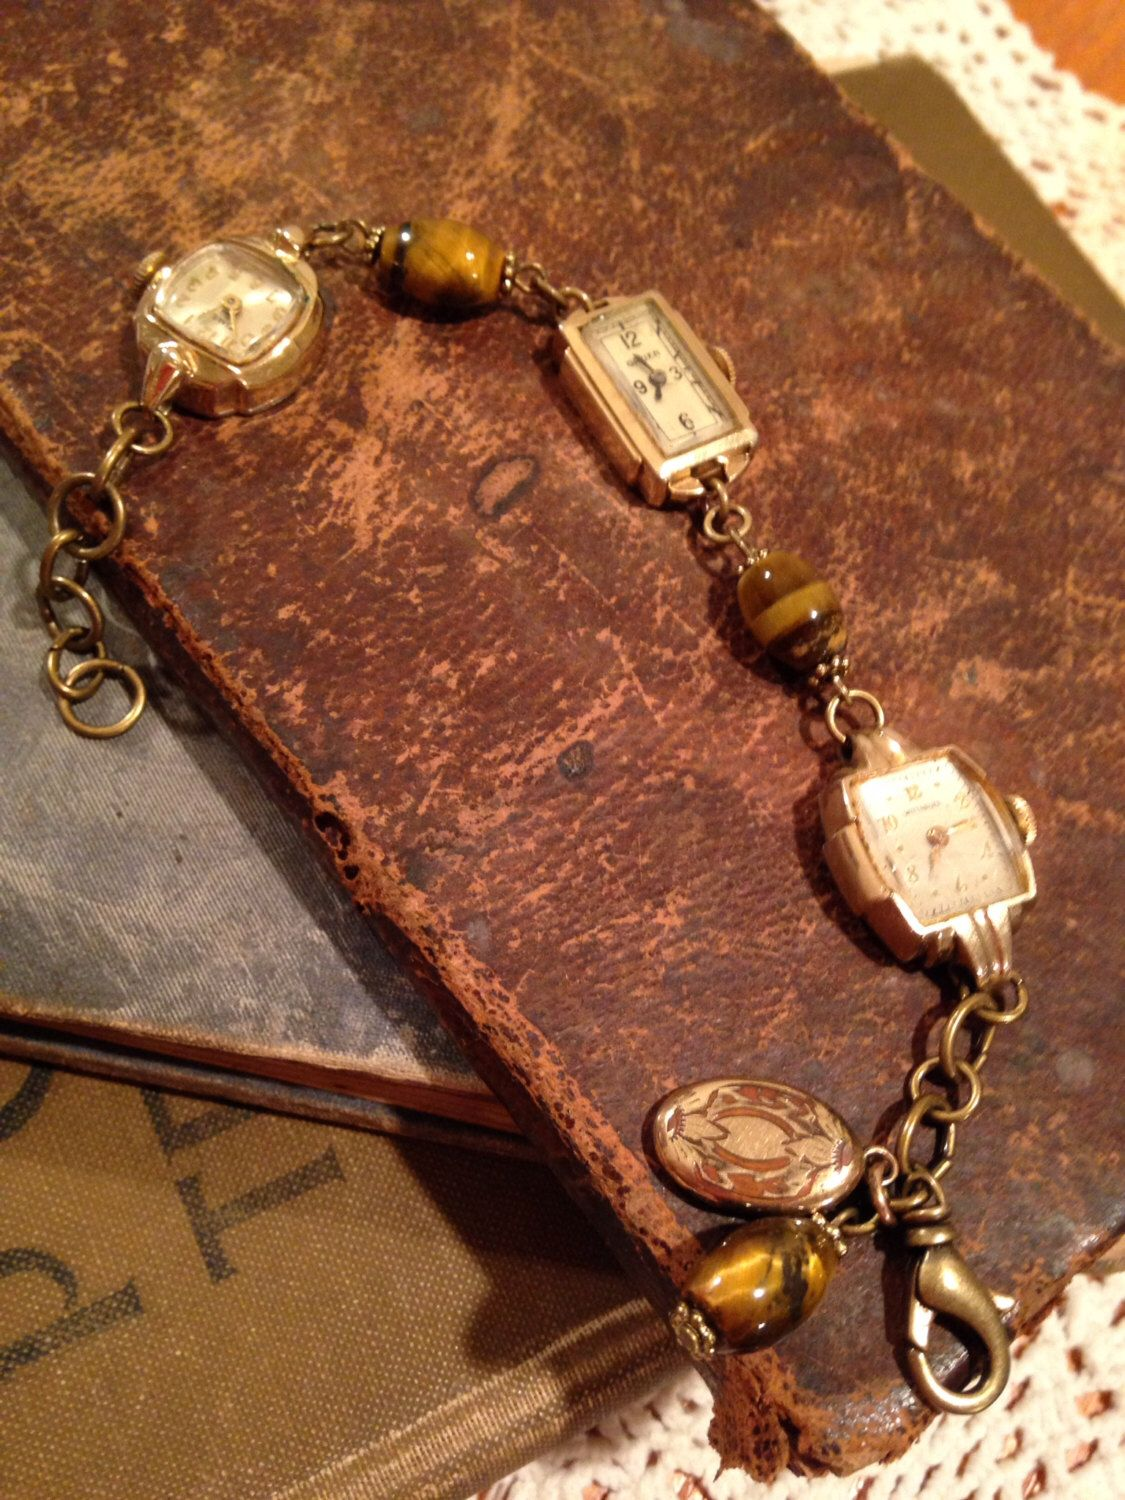 Antique and Vintage Watch Bracelet by PrairieLadyCottage on Etsy https://www.etsy.com/listing/258622599/antique-and-vintage-watch-bracelet